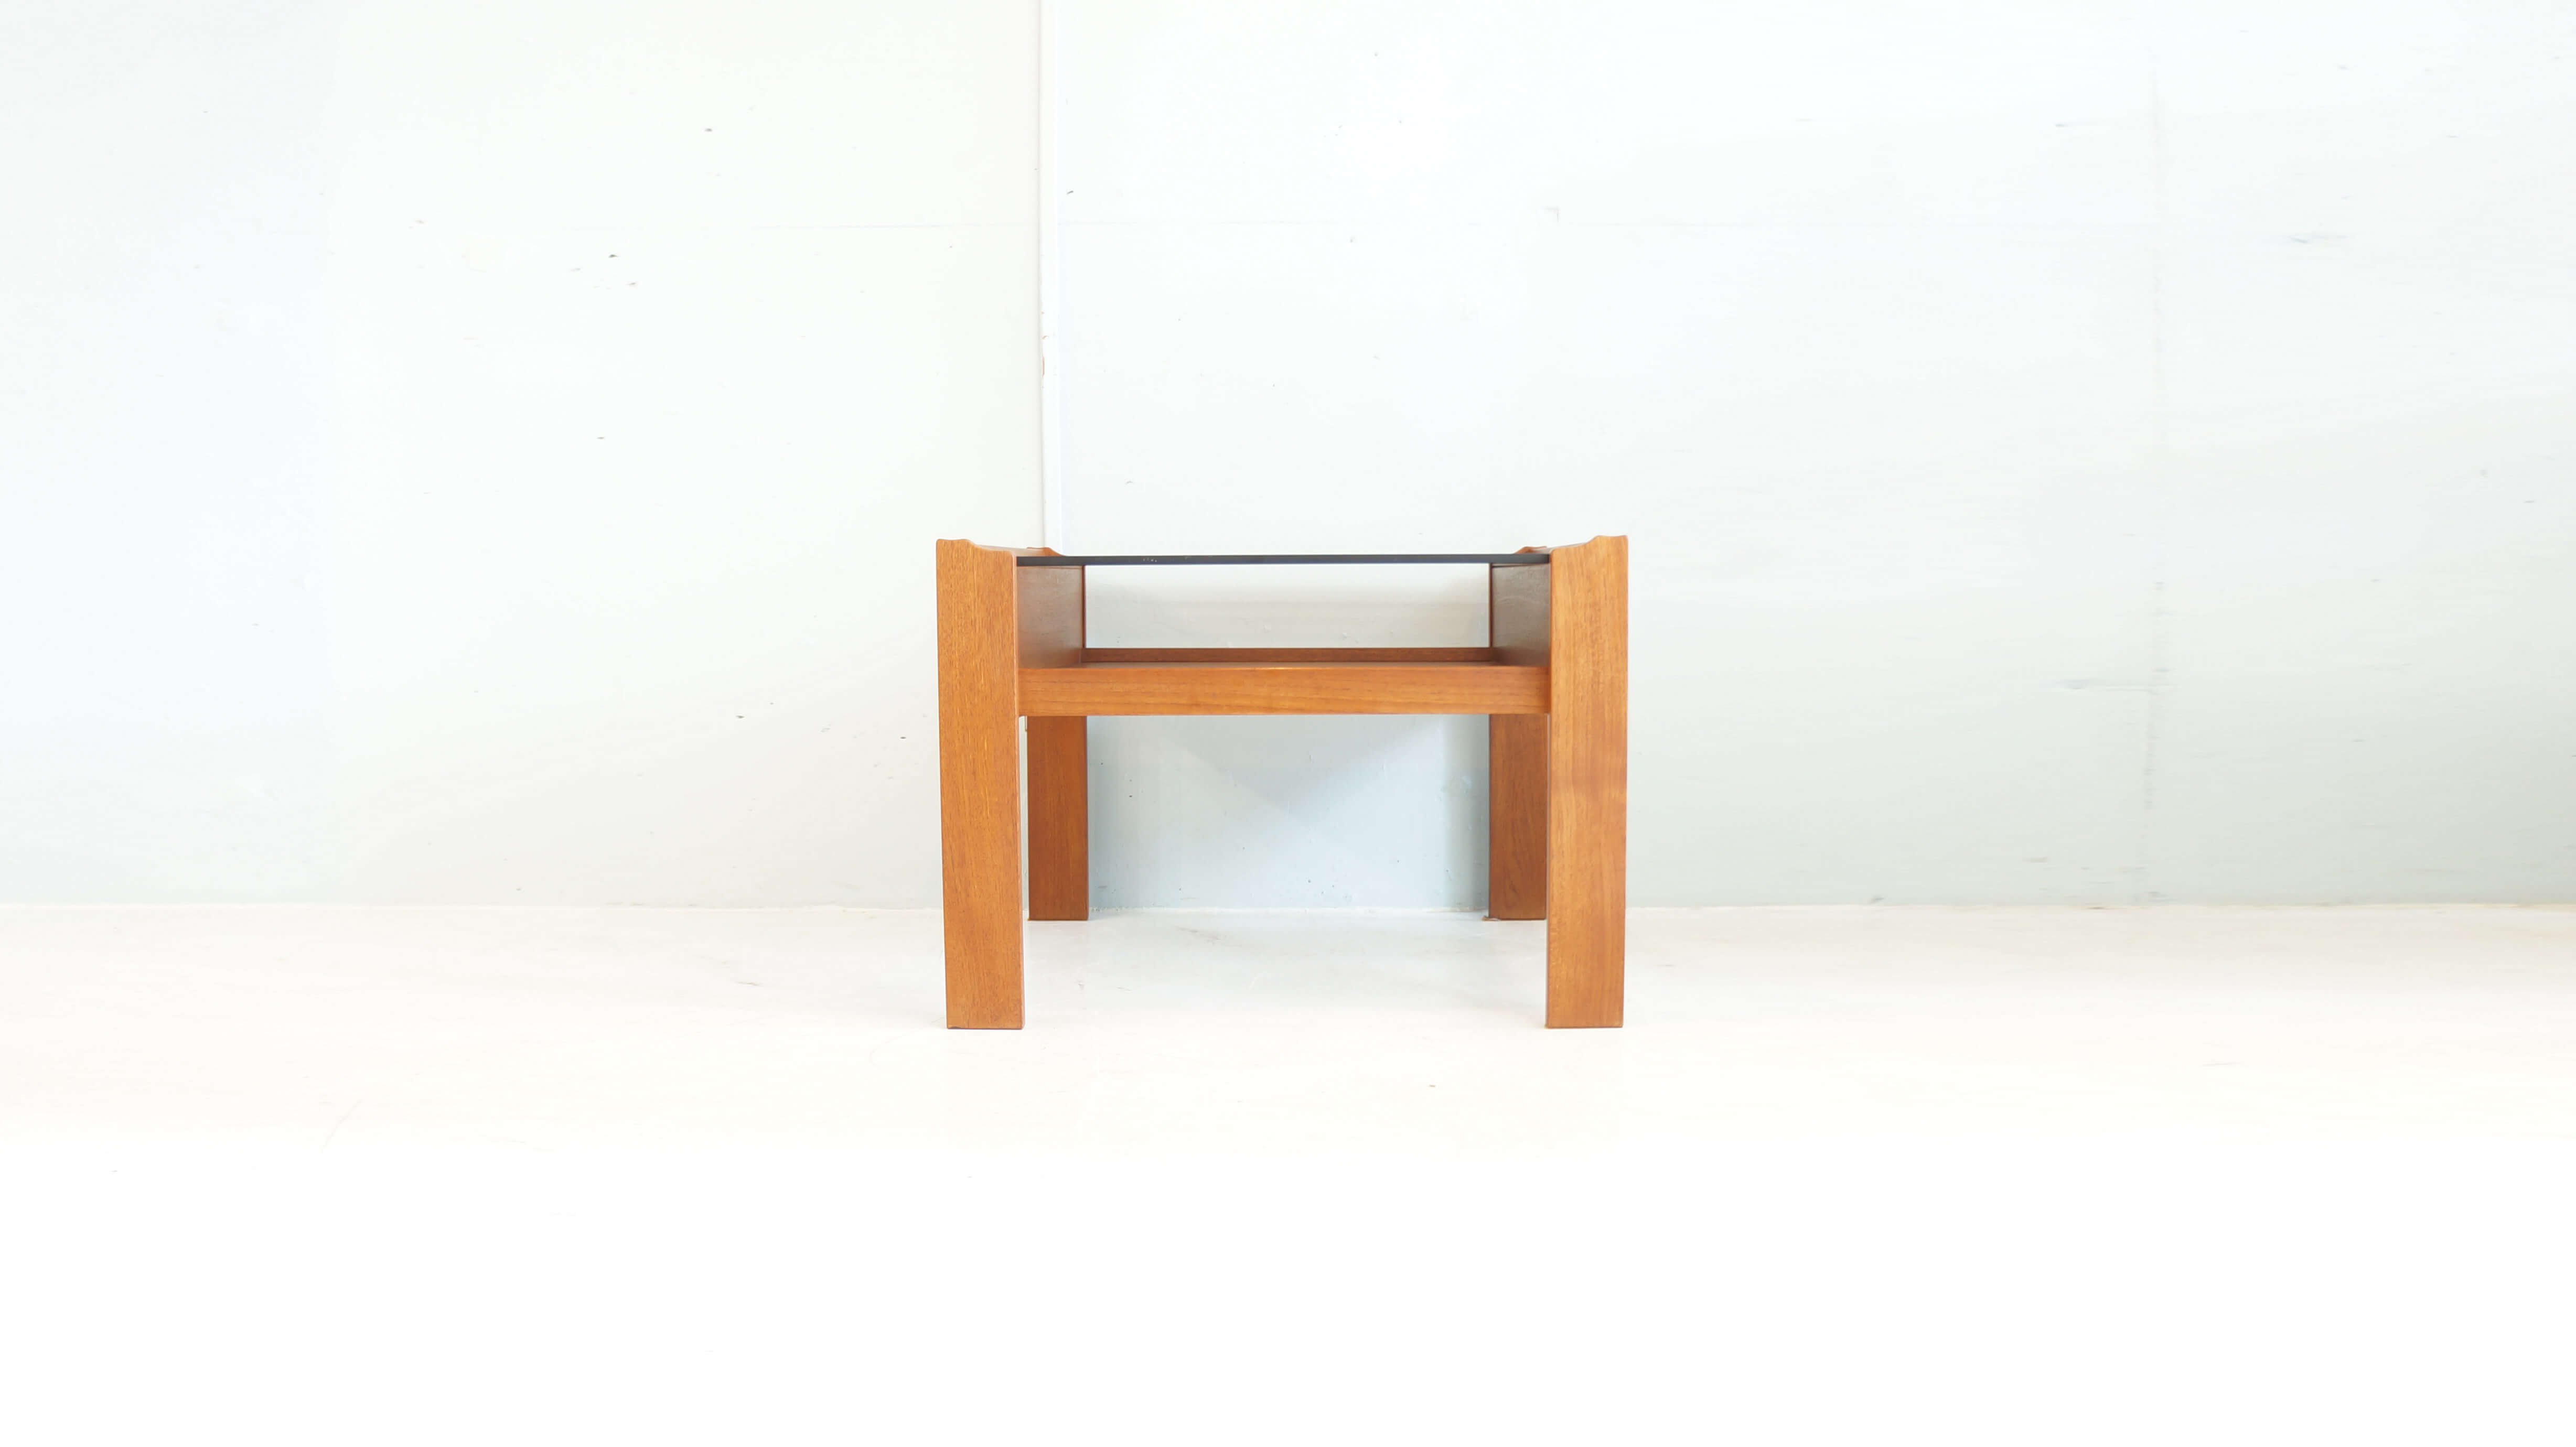 SMOKE GRASS TOP TEAK WOOD SIDE TABLE / チーク材 スモーク ガラス トップ サイド テーブル